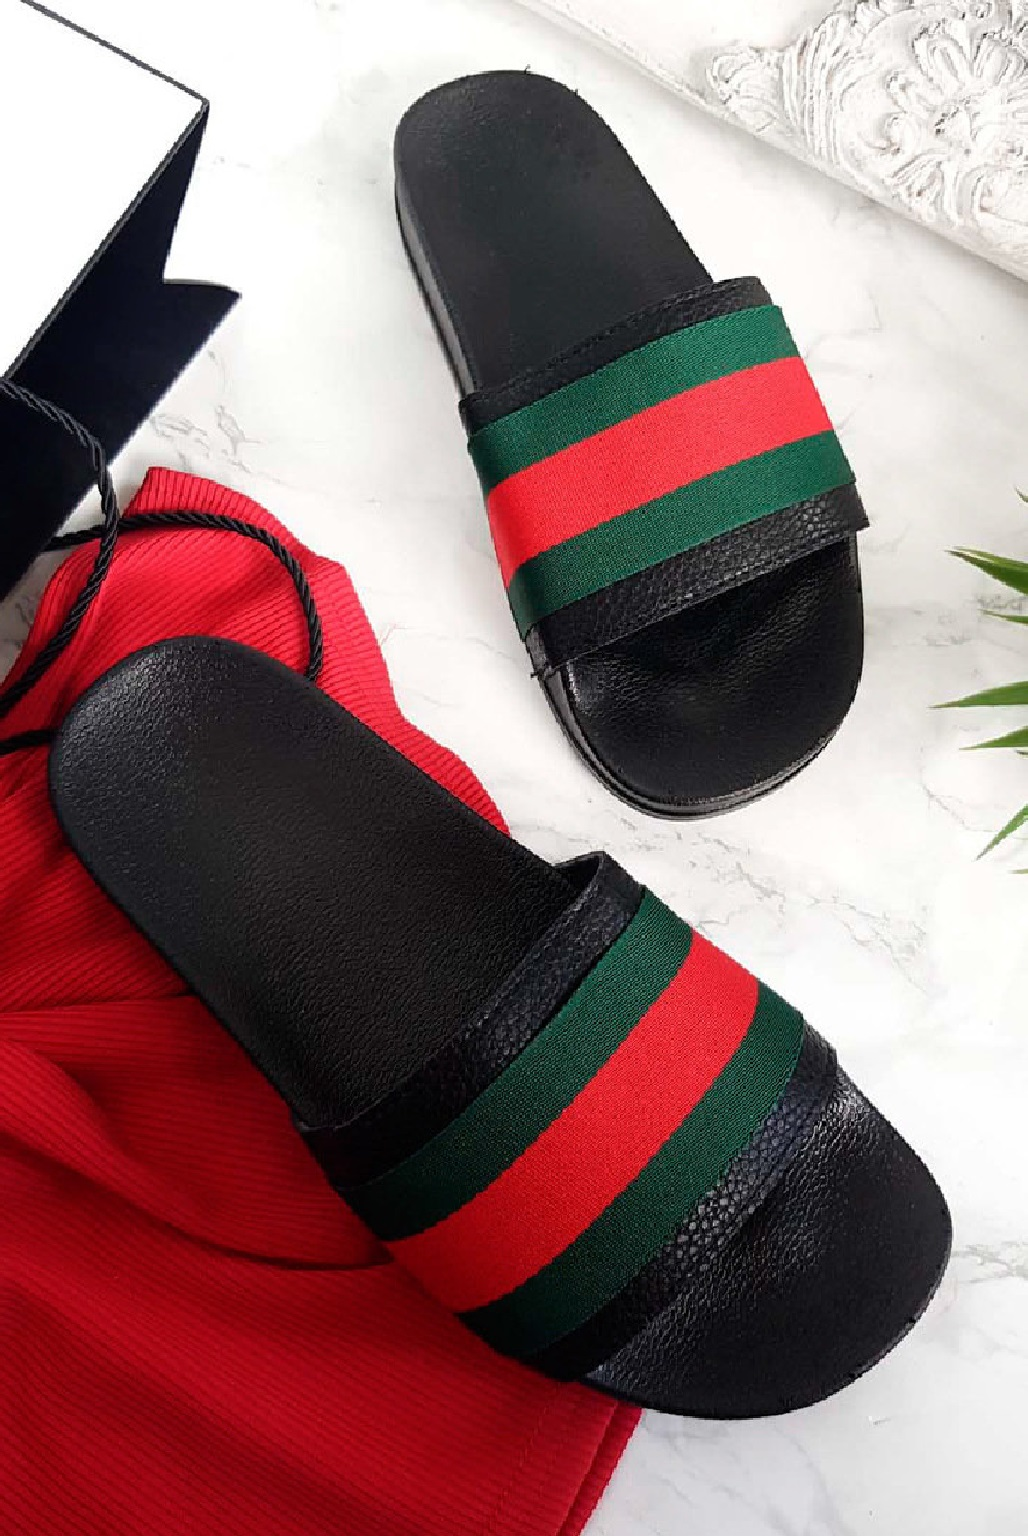 LADIES-WOMENS-FLAT-STRIPED-SLIDES-SLIDERS-SANDALS-SUMMER-MULES-SLIPPERS-SHOES-SZ thumbnail 2